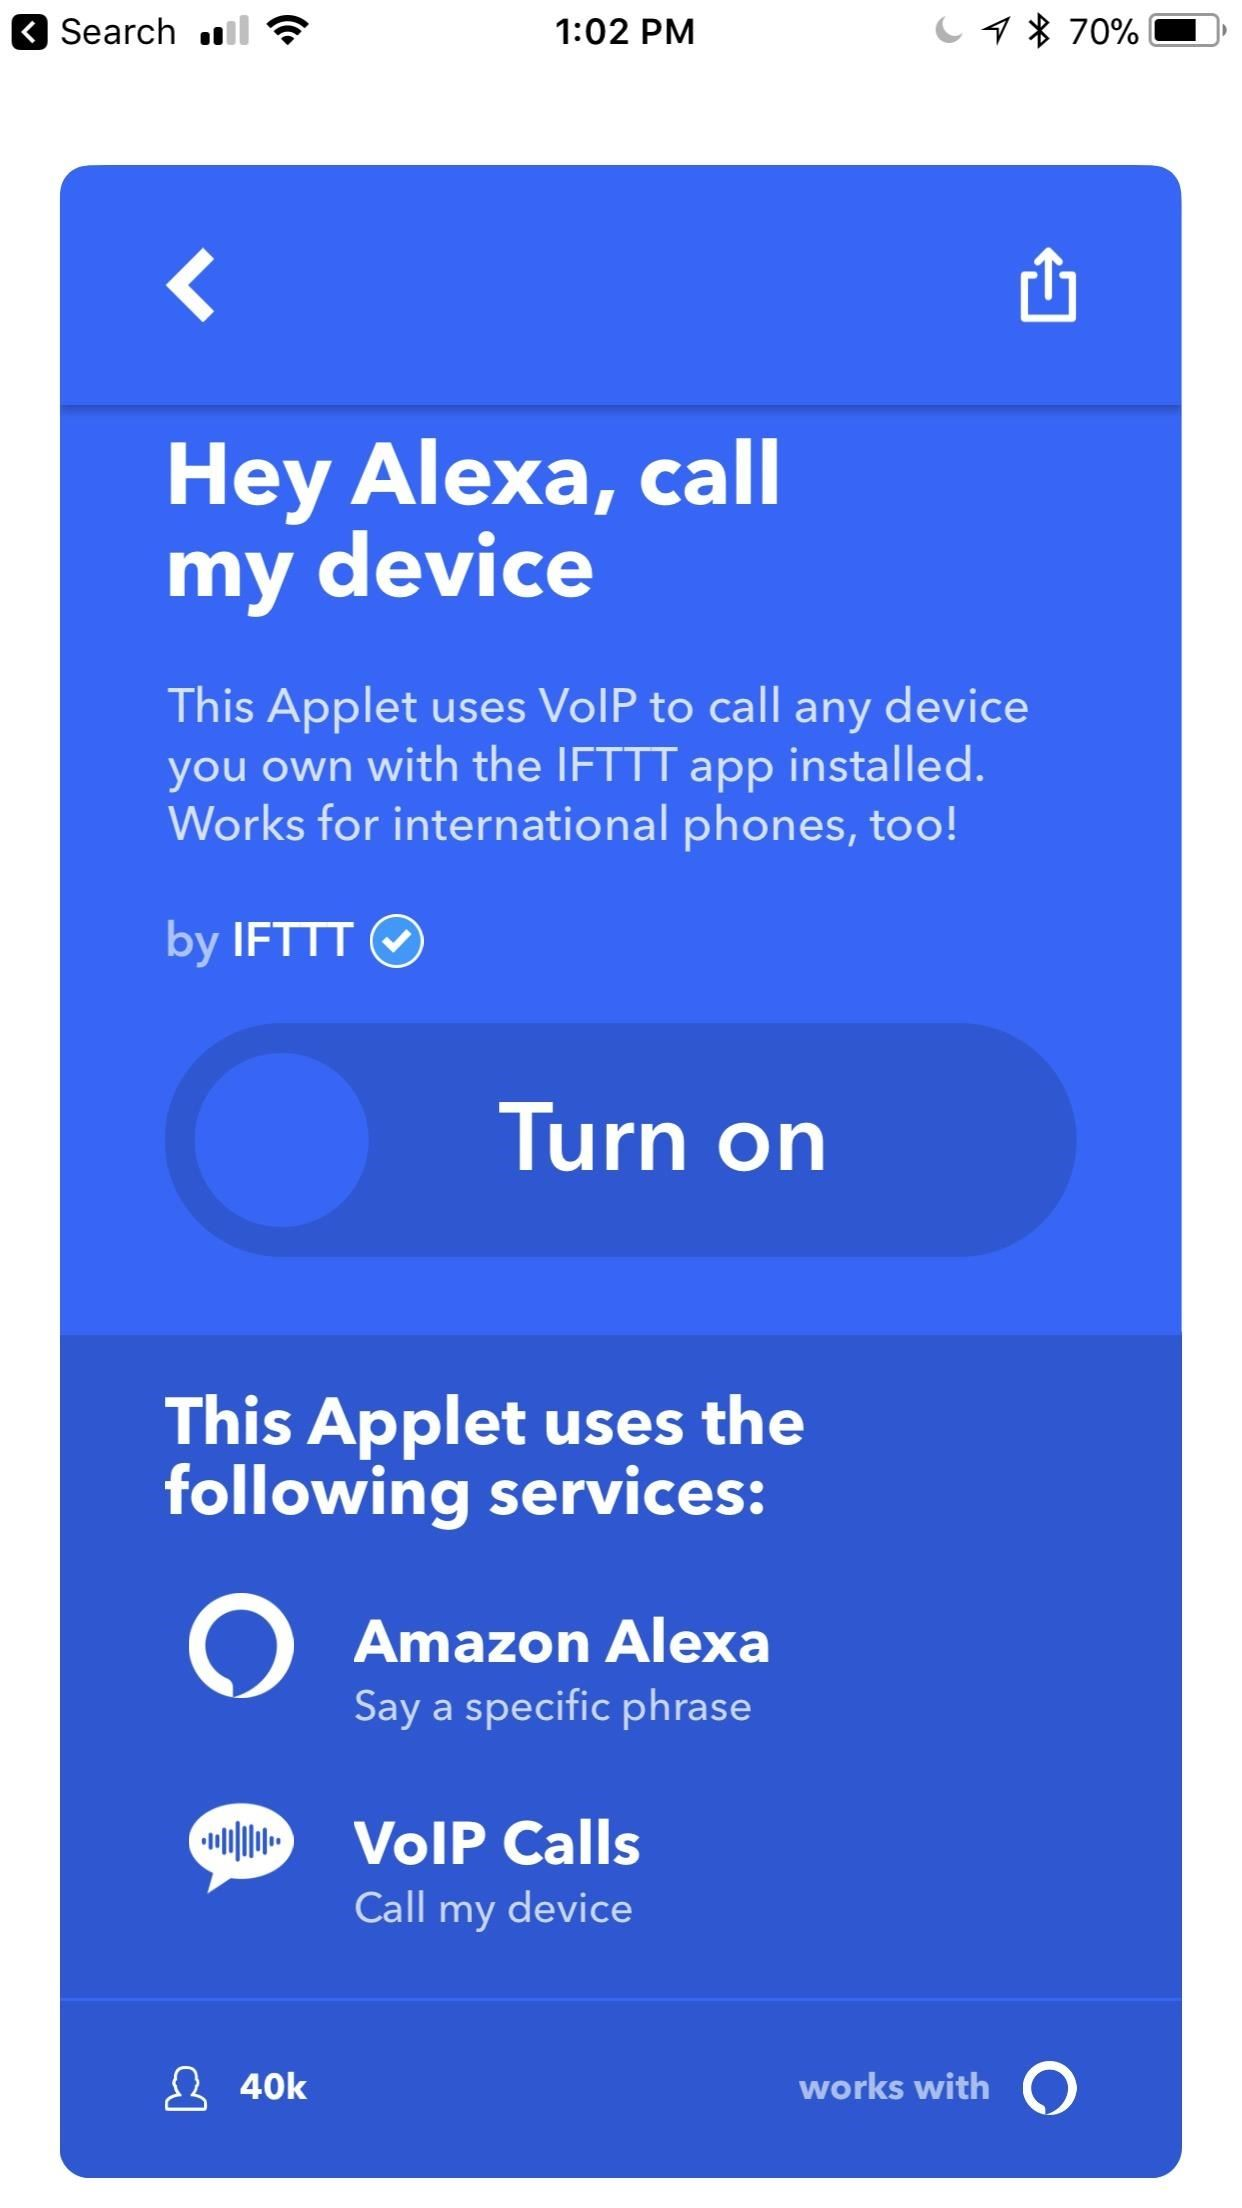 IFTTT 101: How to Find & Set Up Applets